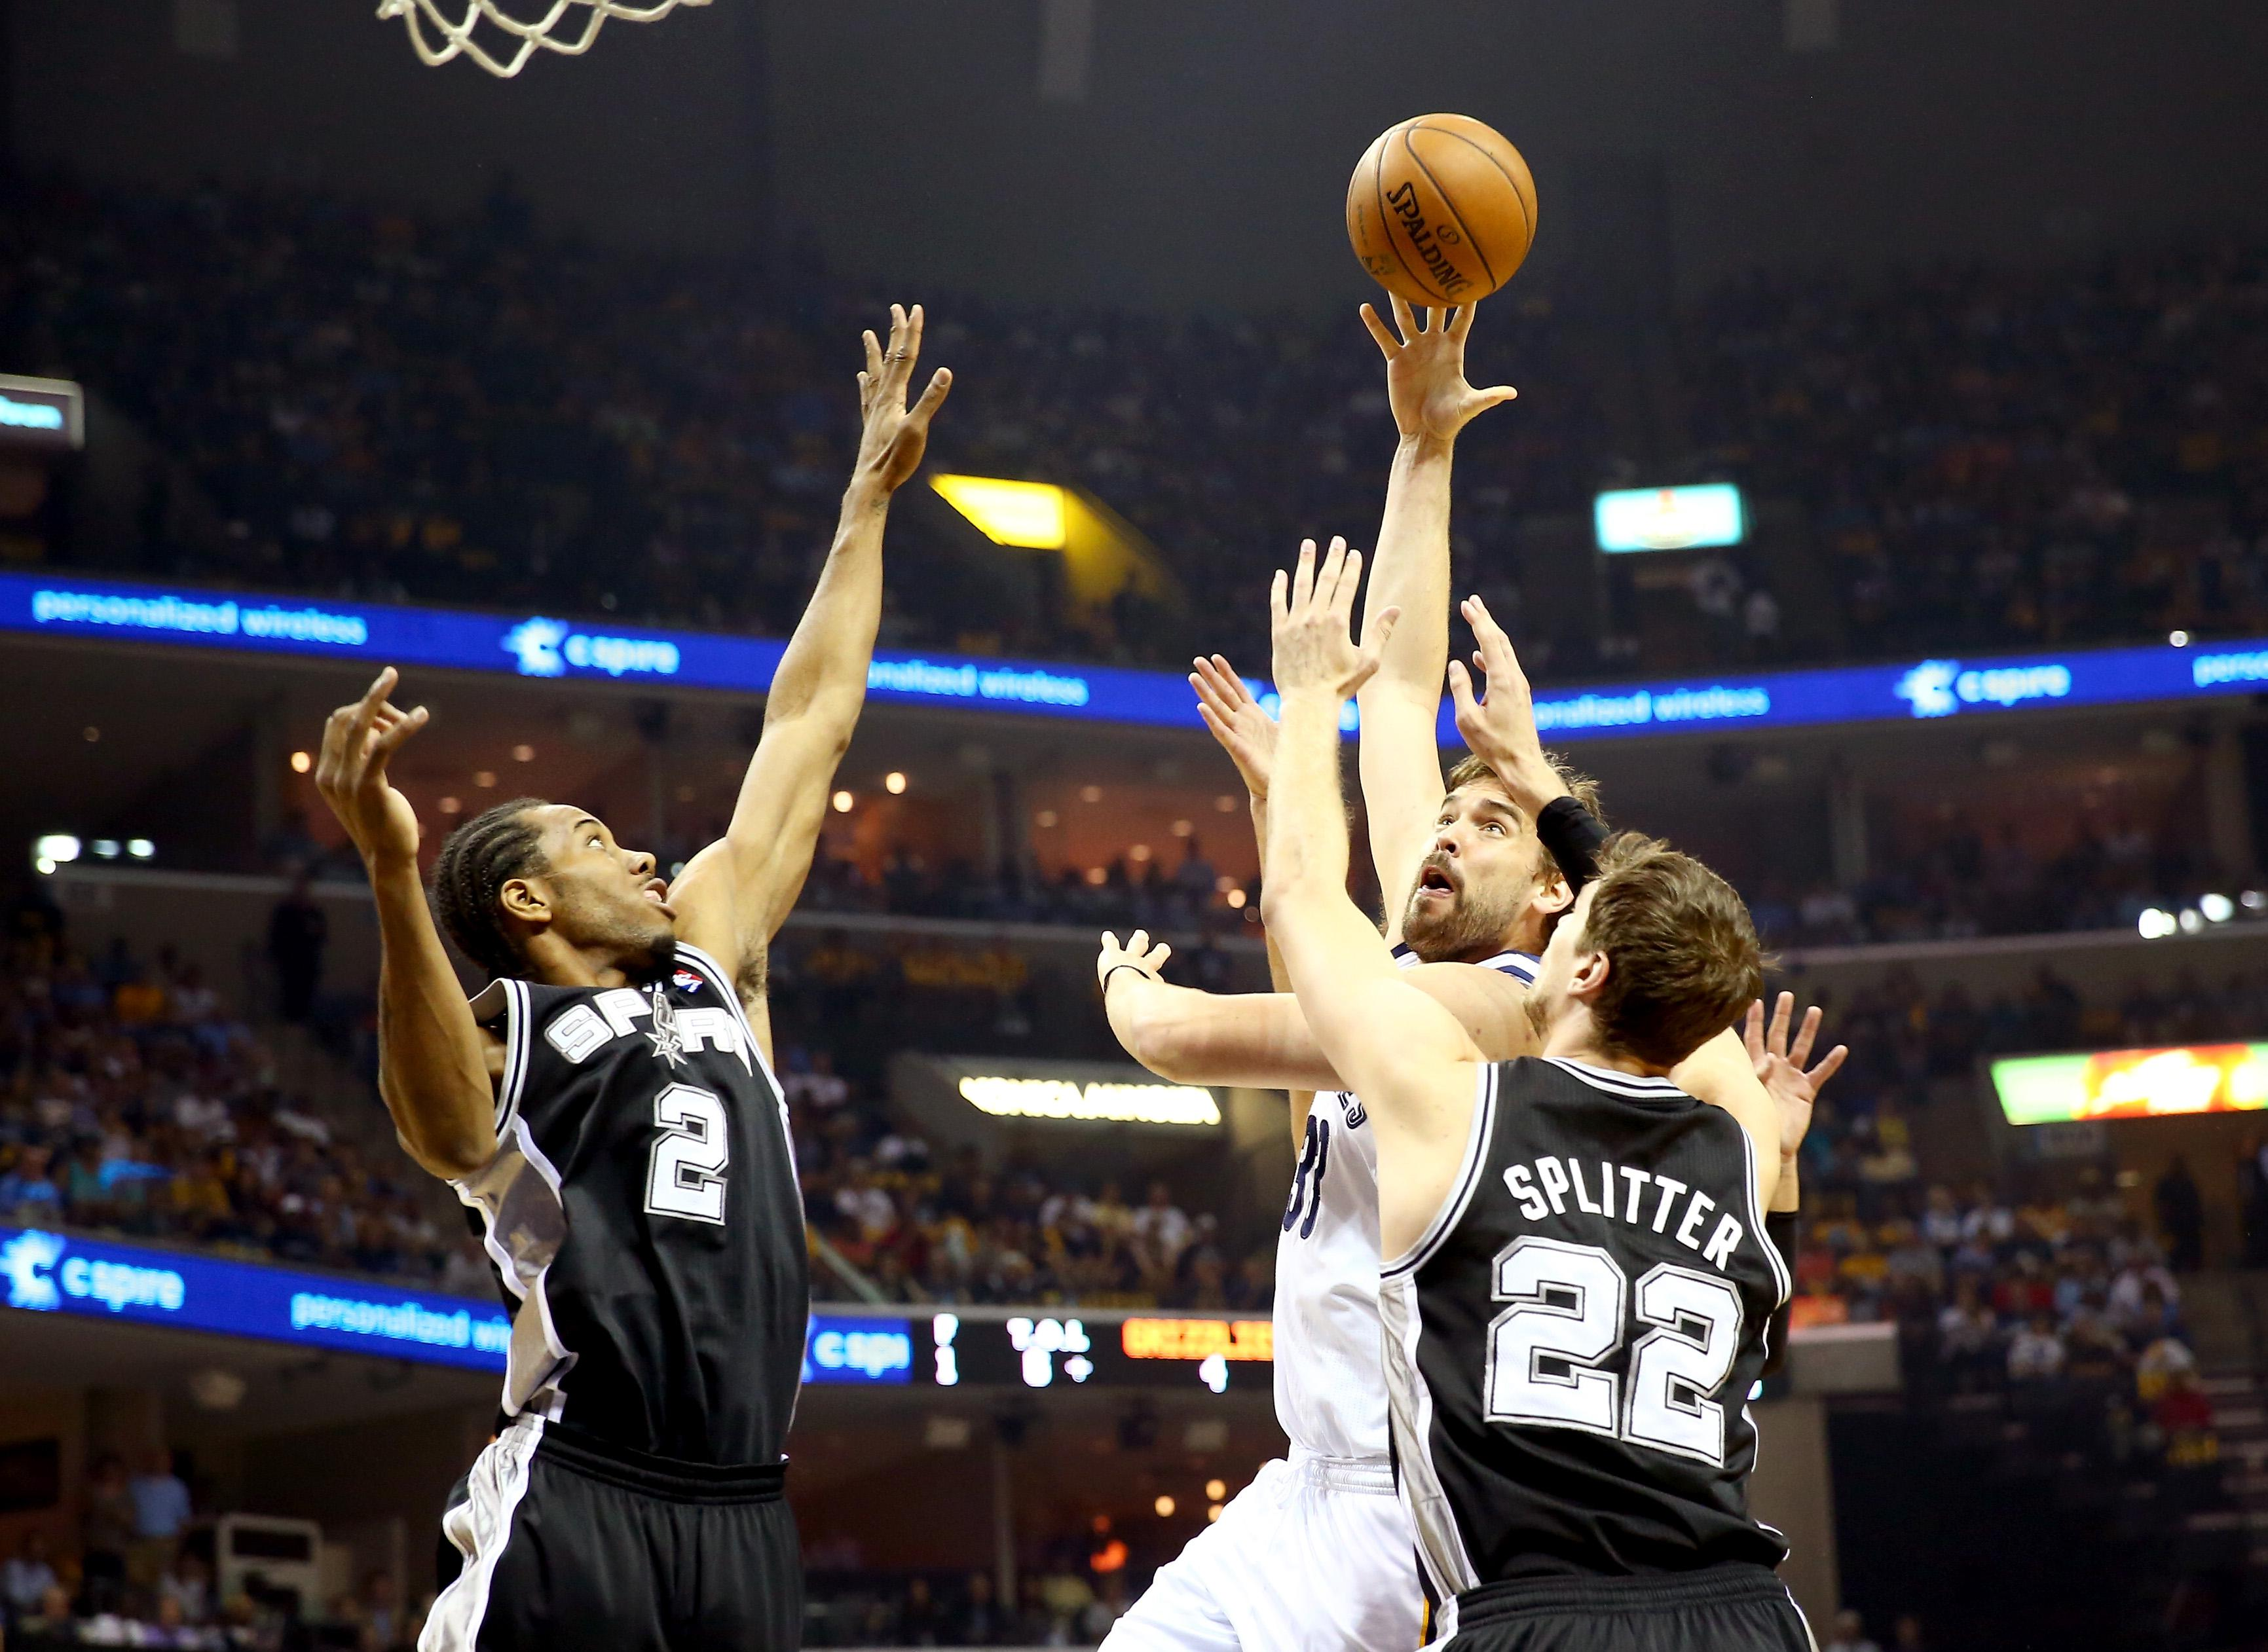 Marc Gasol, No. 33 of the Memphis Grizzlies, goes up for a shot against Tiago Splitter, No. 22 and Kawhi Leonard, No. 2 of the San Antonio Spurs, in the first quarter during Game 4 of the Western Conference Finals of the 2013 NBA Playoffs at the FedExForum on May 27, 2013, in Memphis, Tenn.